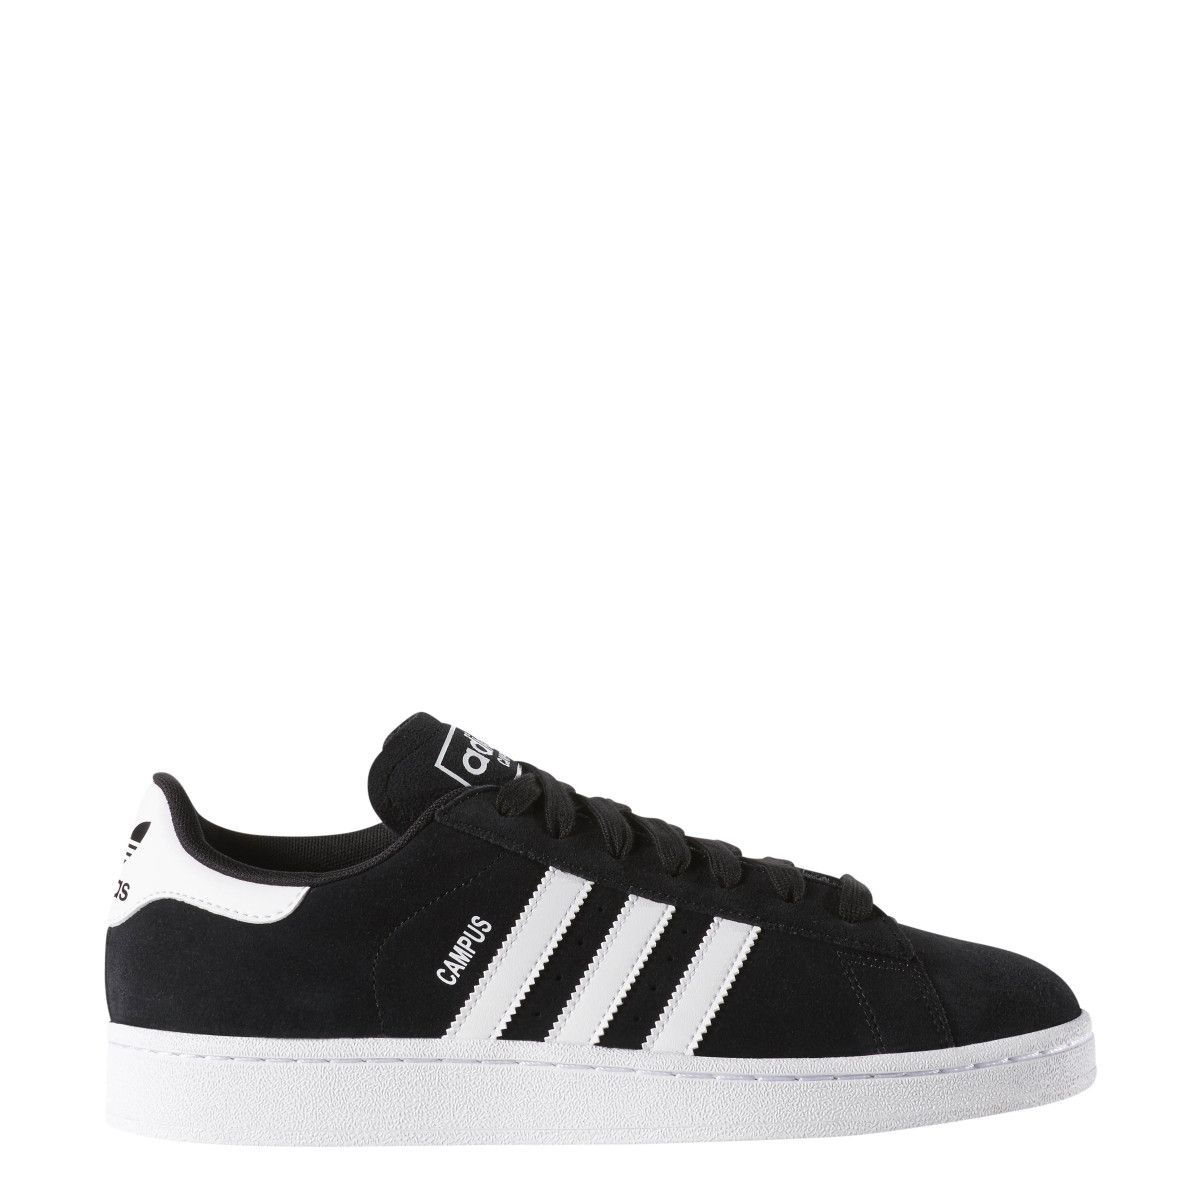 Adidas Campus Black White Sneakers Scarpe Da Ginnastica In